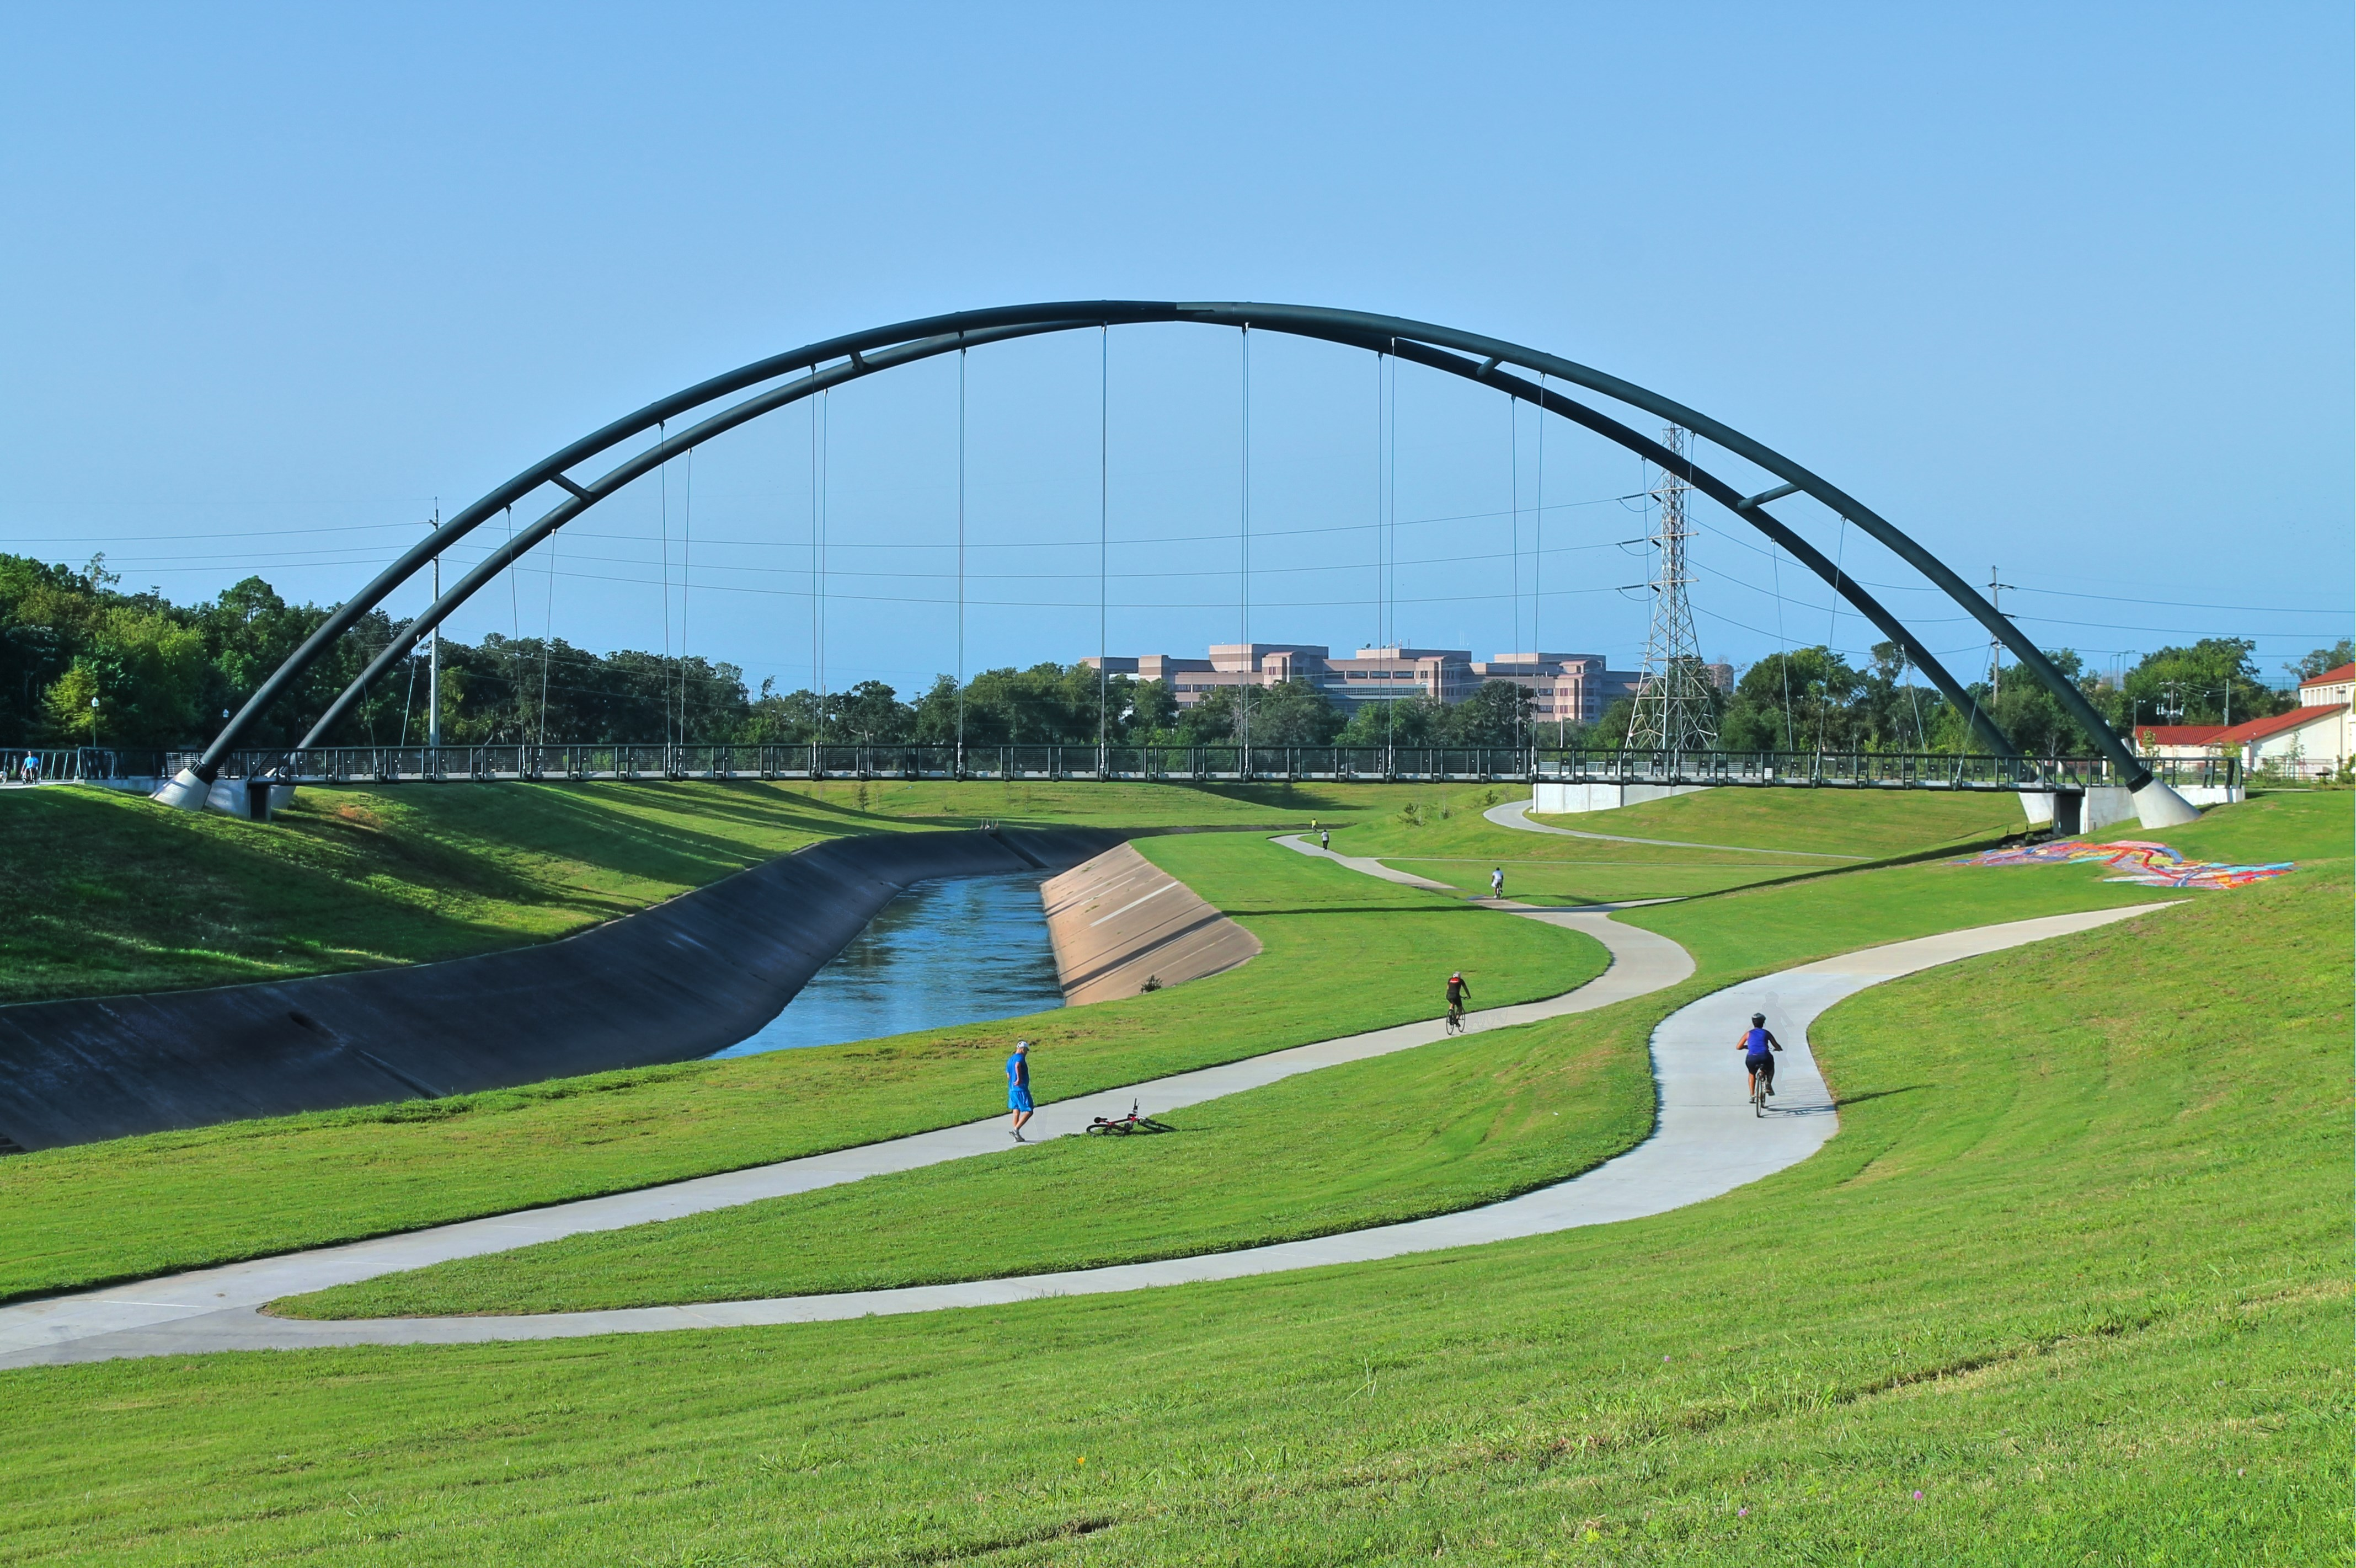 Texas' Brays Bayou Greenway Trail